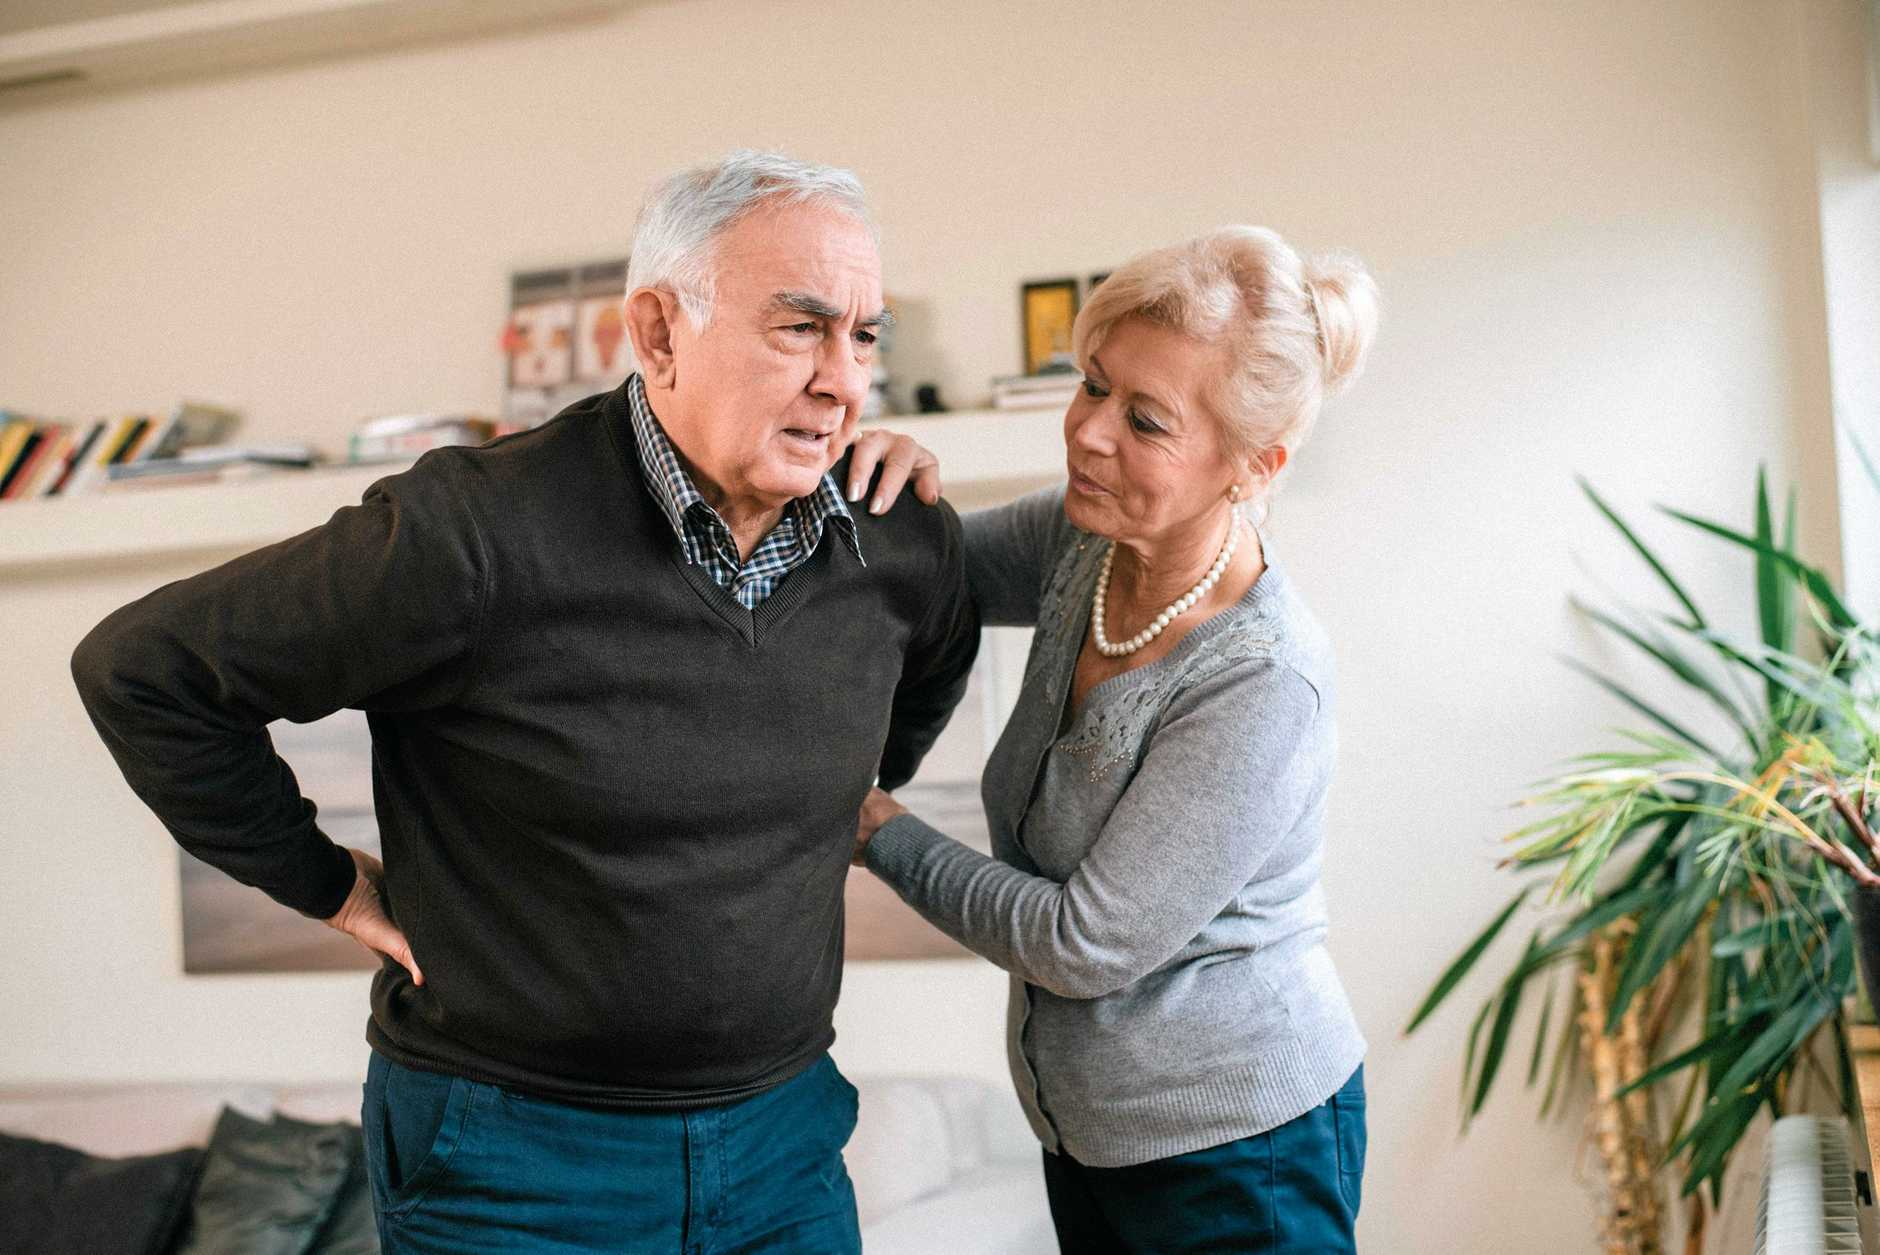 WAYS TO COPE: Back pain is an increasingly common problem many people face, with 70-90 per cent of Australians experiencing back pain at some point in their life.